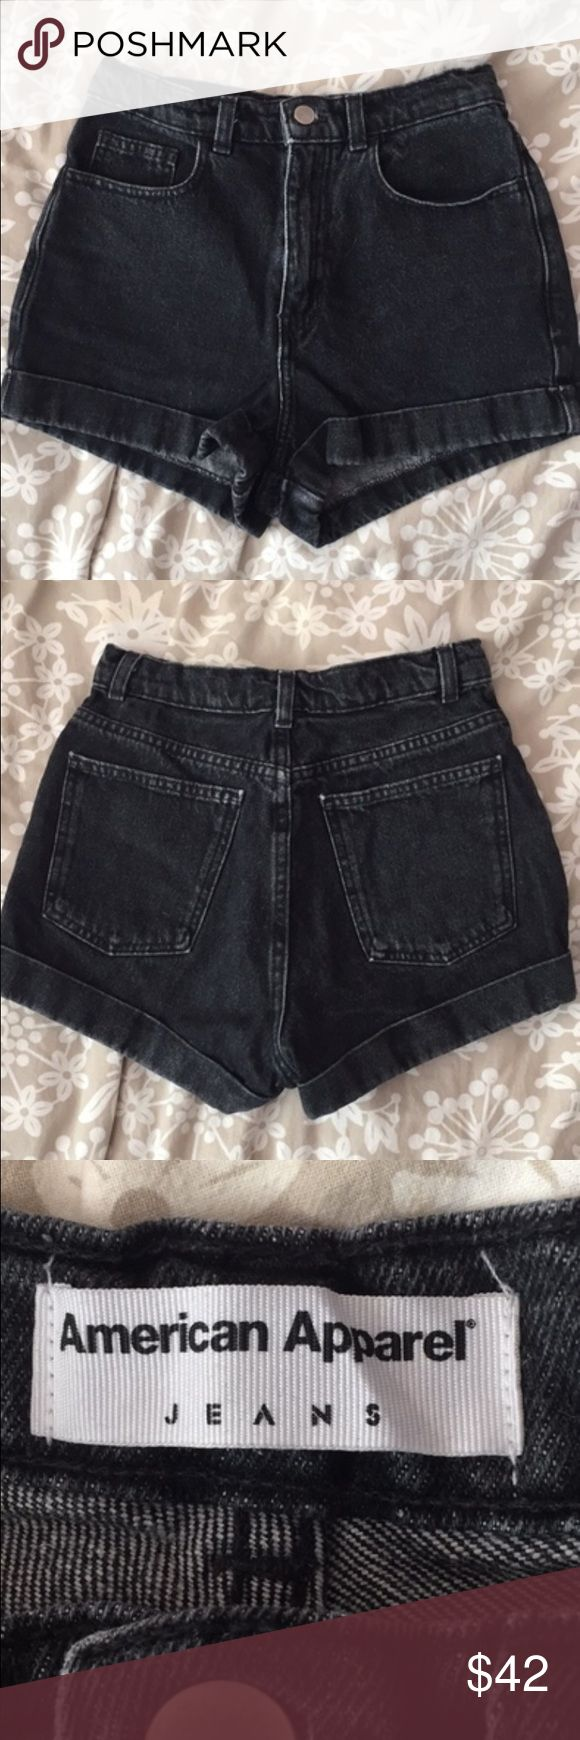 High Waisted Acid Wash Shorts Bought from AA! this girls thighs can't fit in this anymore lmao.. super thick material that makes anyone's body look prime American Apparel Shorts Jean Shorts